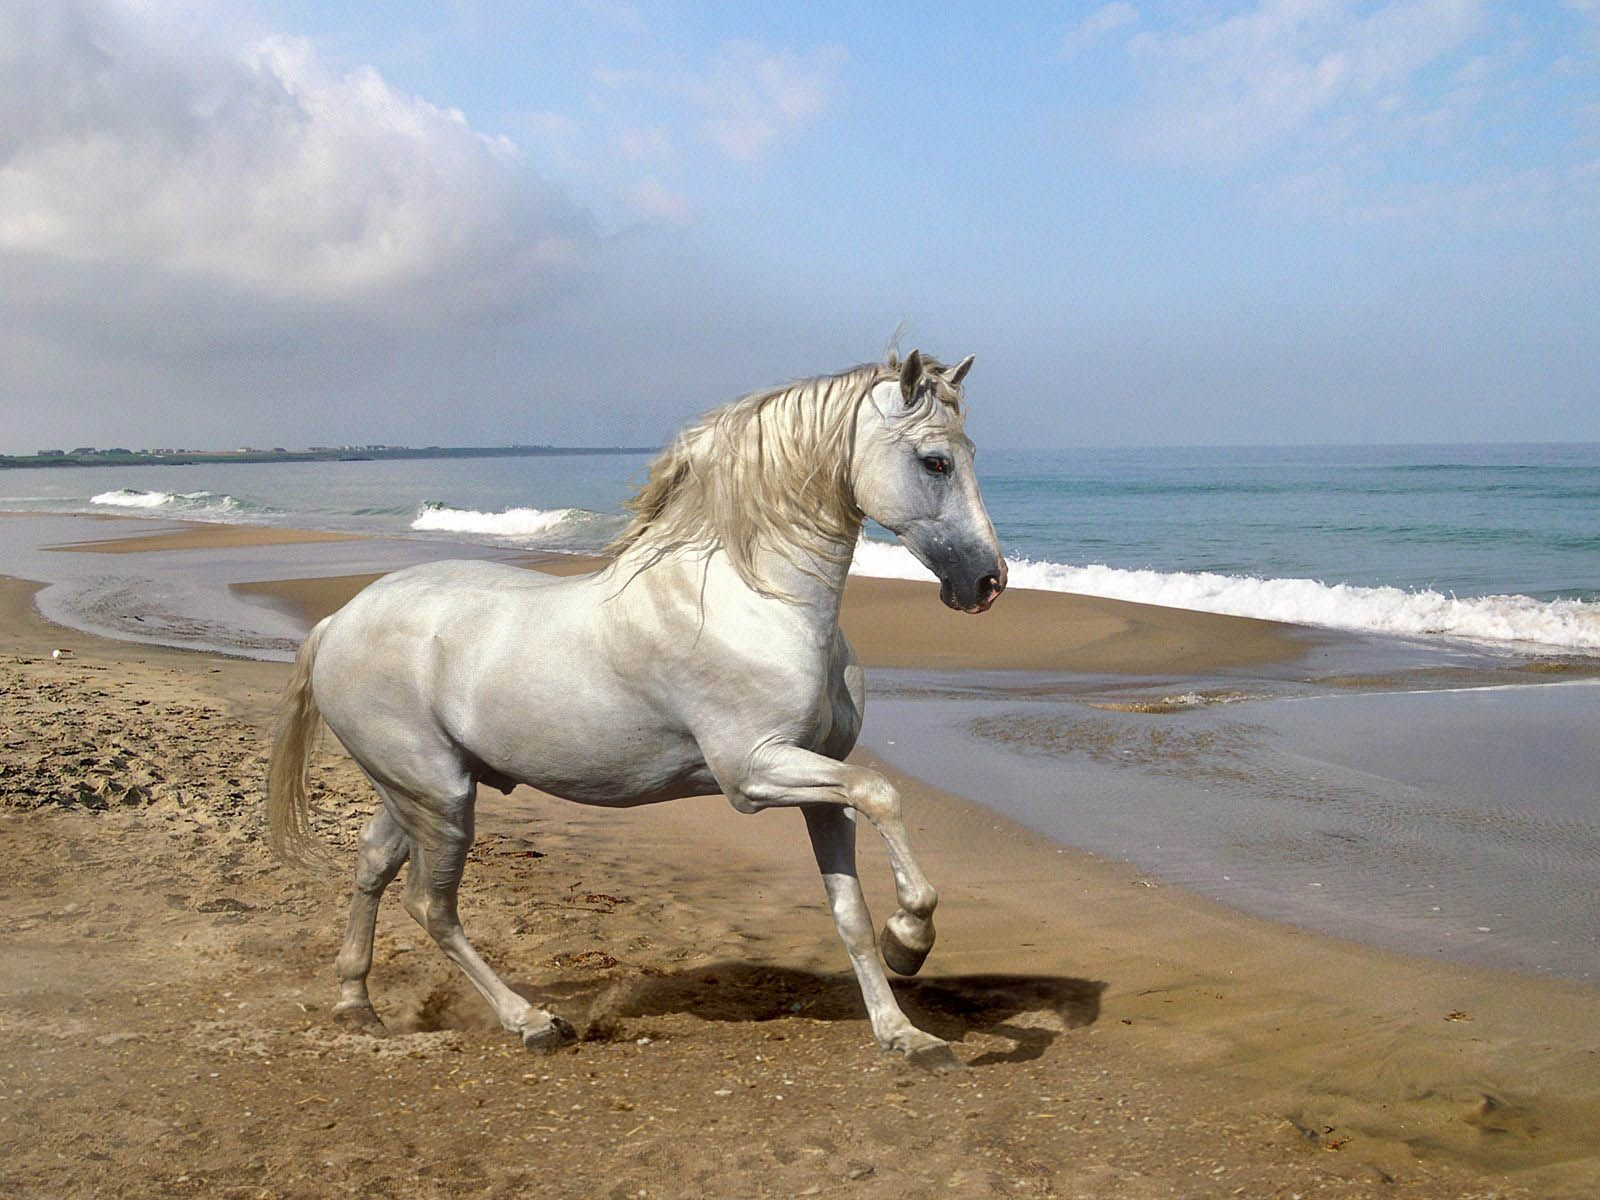 Beautiful white horse on the beach 1600x1200 wallpaper chevaux beautiful white horse on the beach 1600x1200 wallpaper sciox Choice Image